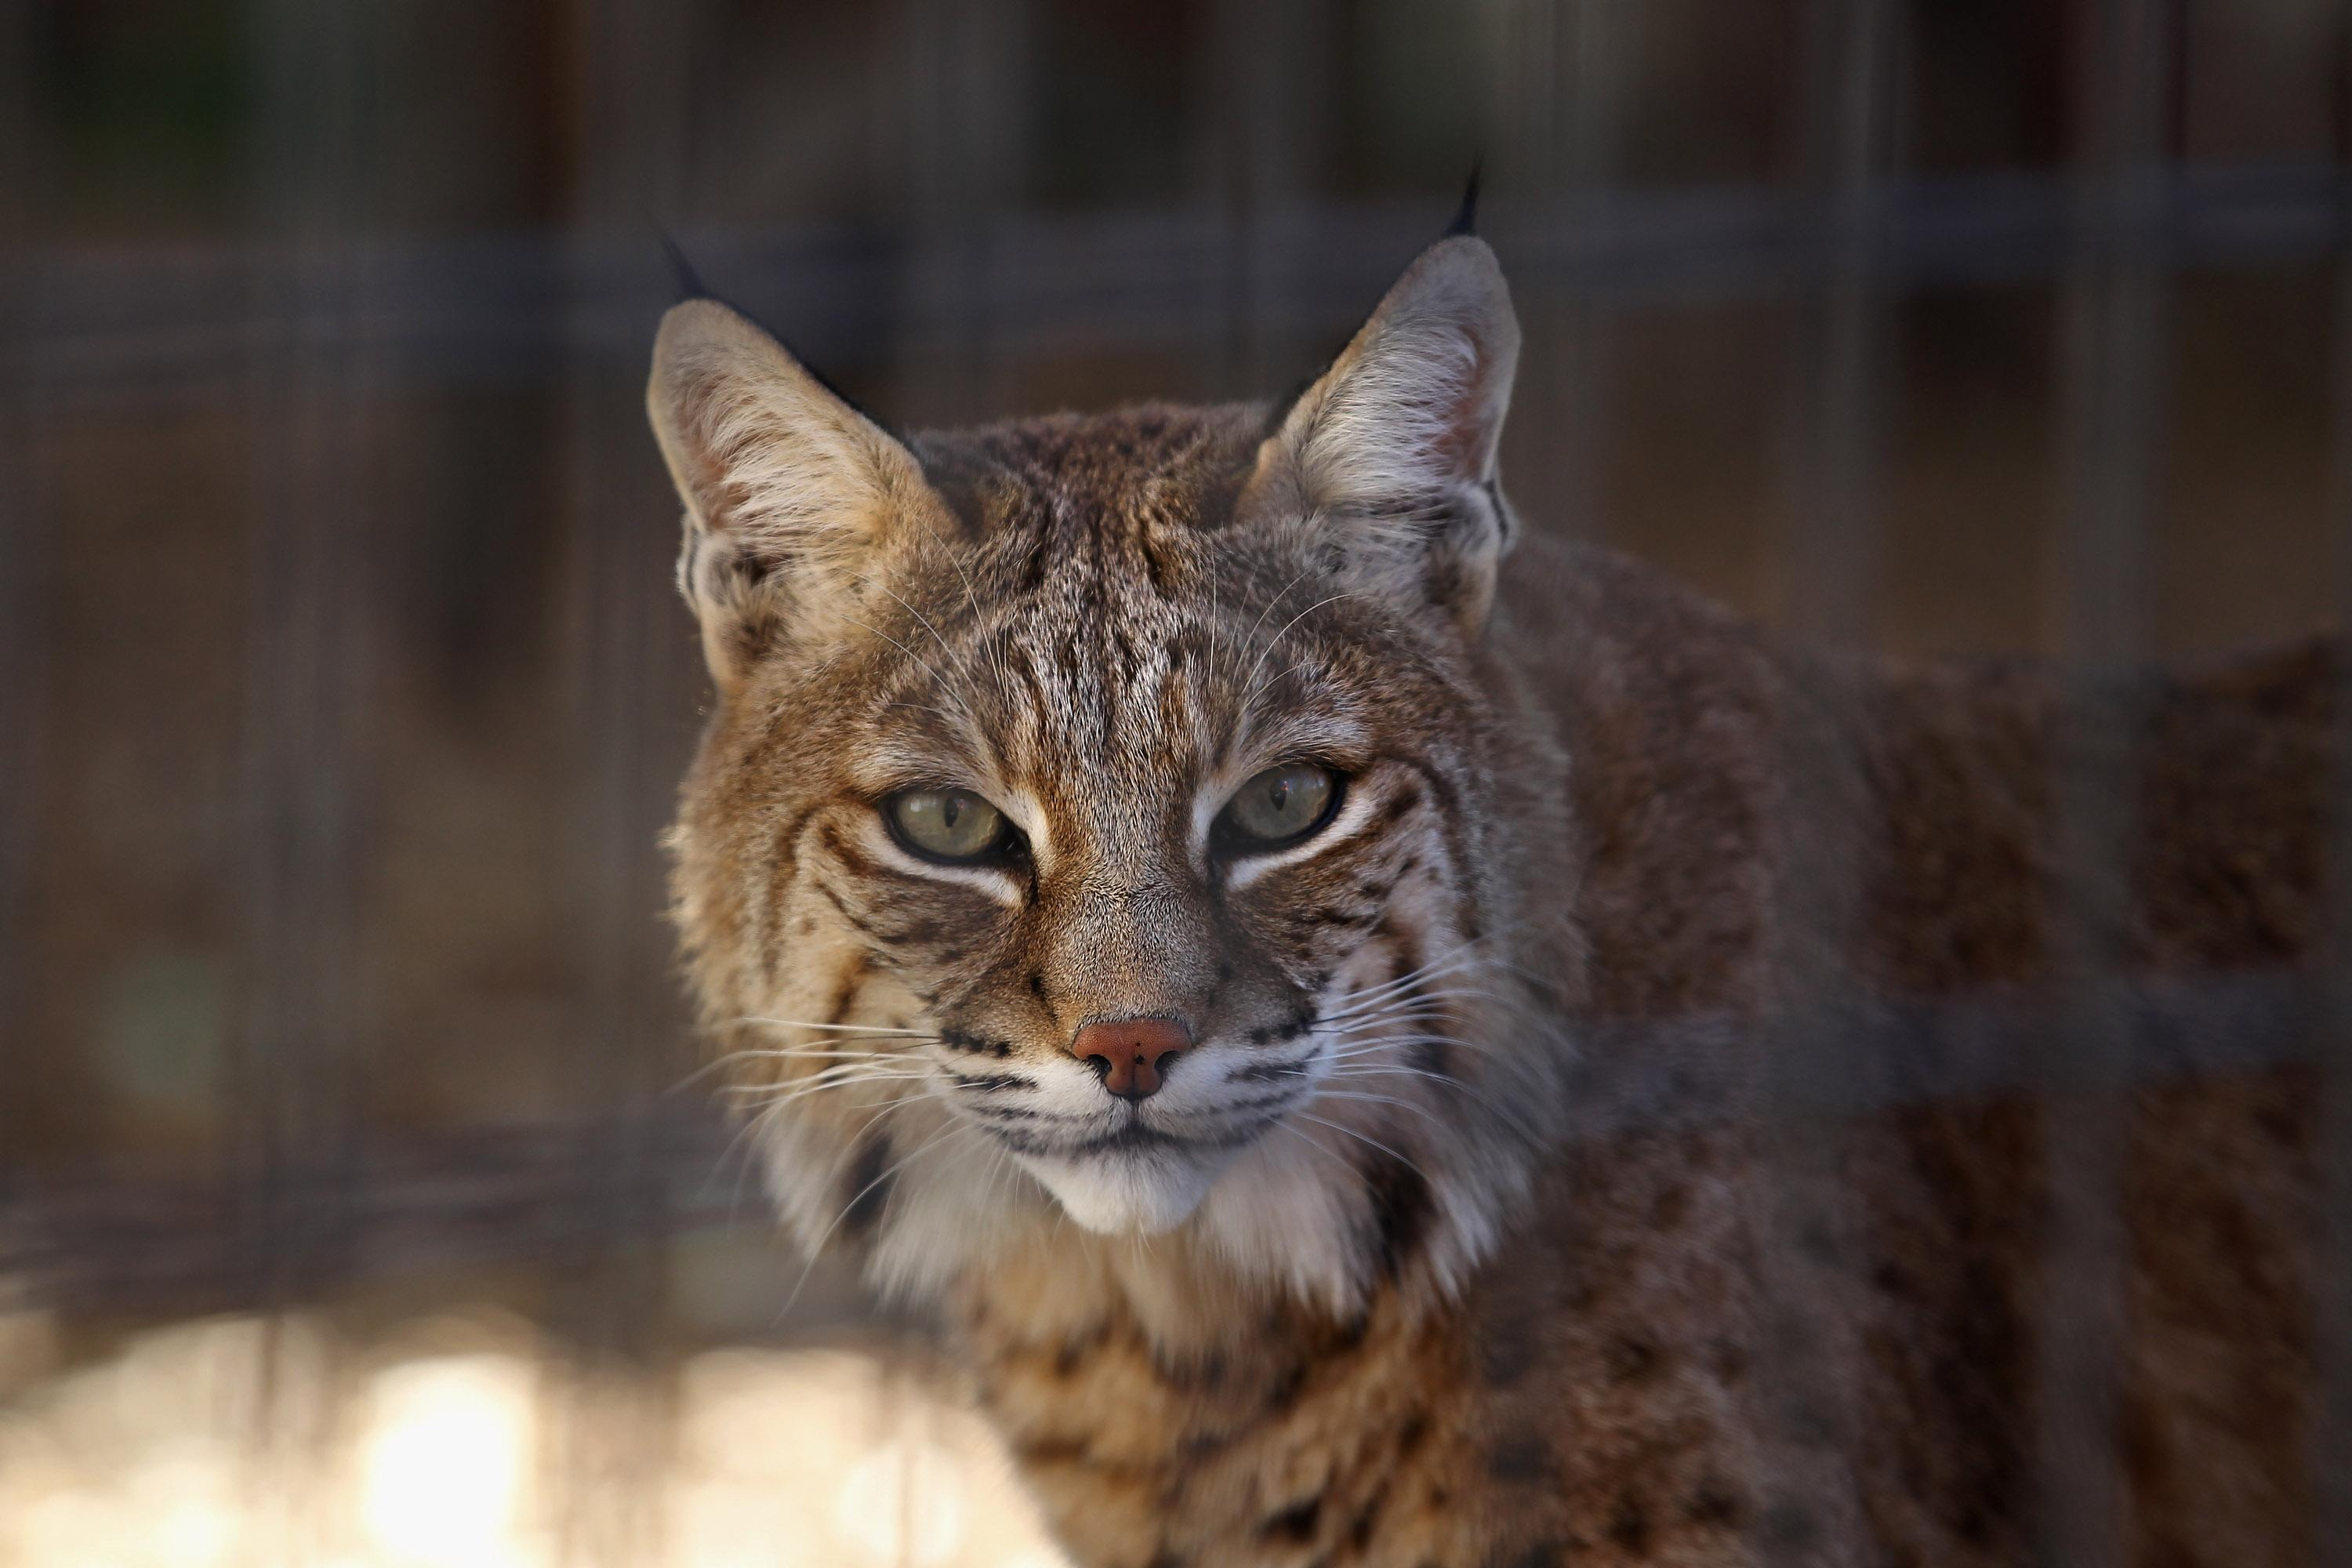 Georgia woman strangles rabid bobcat while her young granddaughter slept